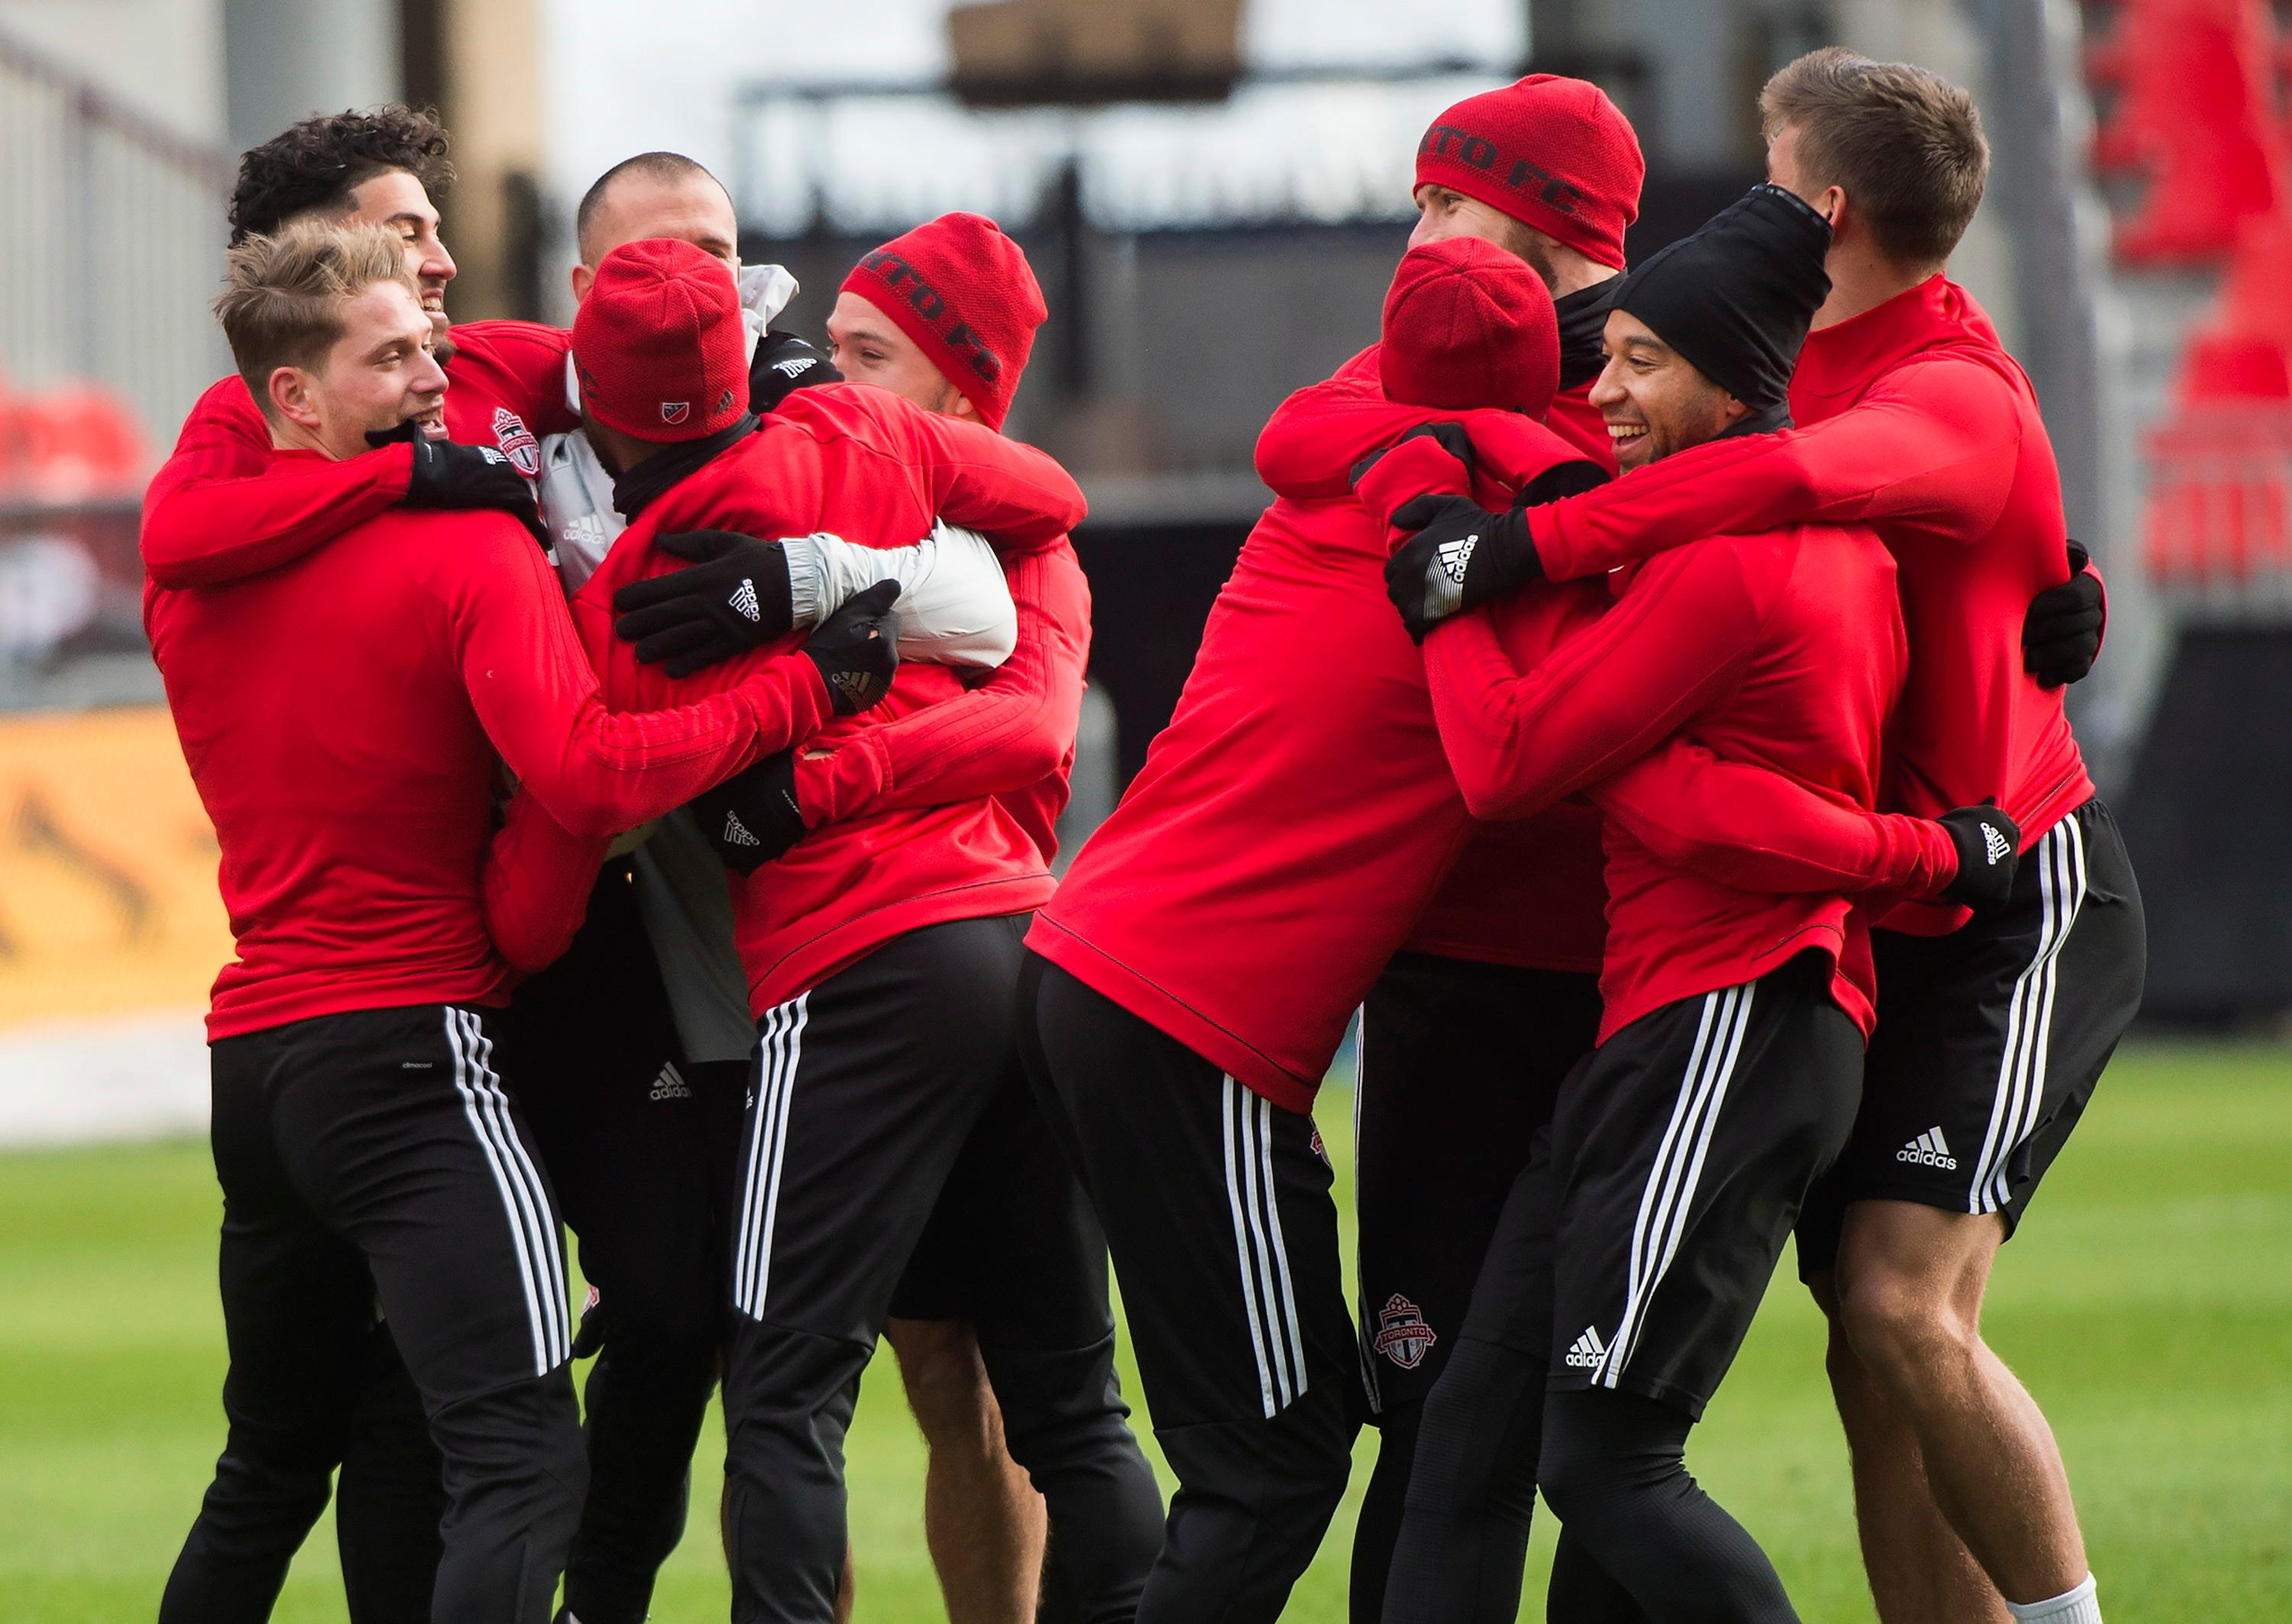 Toronto FC teammates joke around during practice ahead of the MLS Cup soccer final against the Seattle Sounders, in Toronto, Friday, Dec. 8, 2017. (Nathan Denette/The Canadian Press via AP)